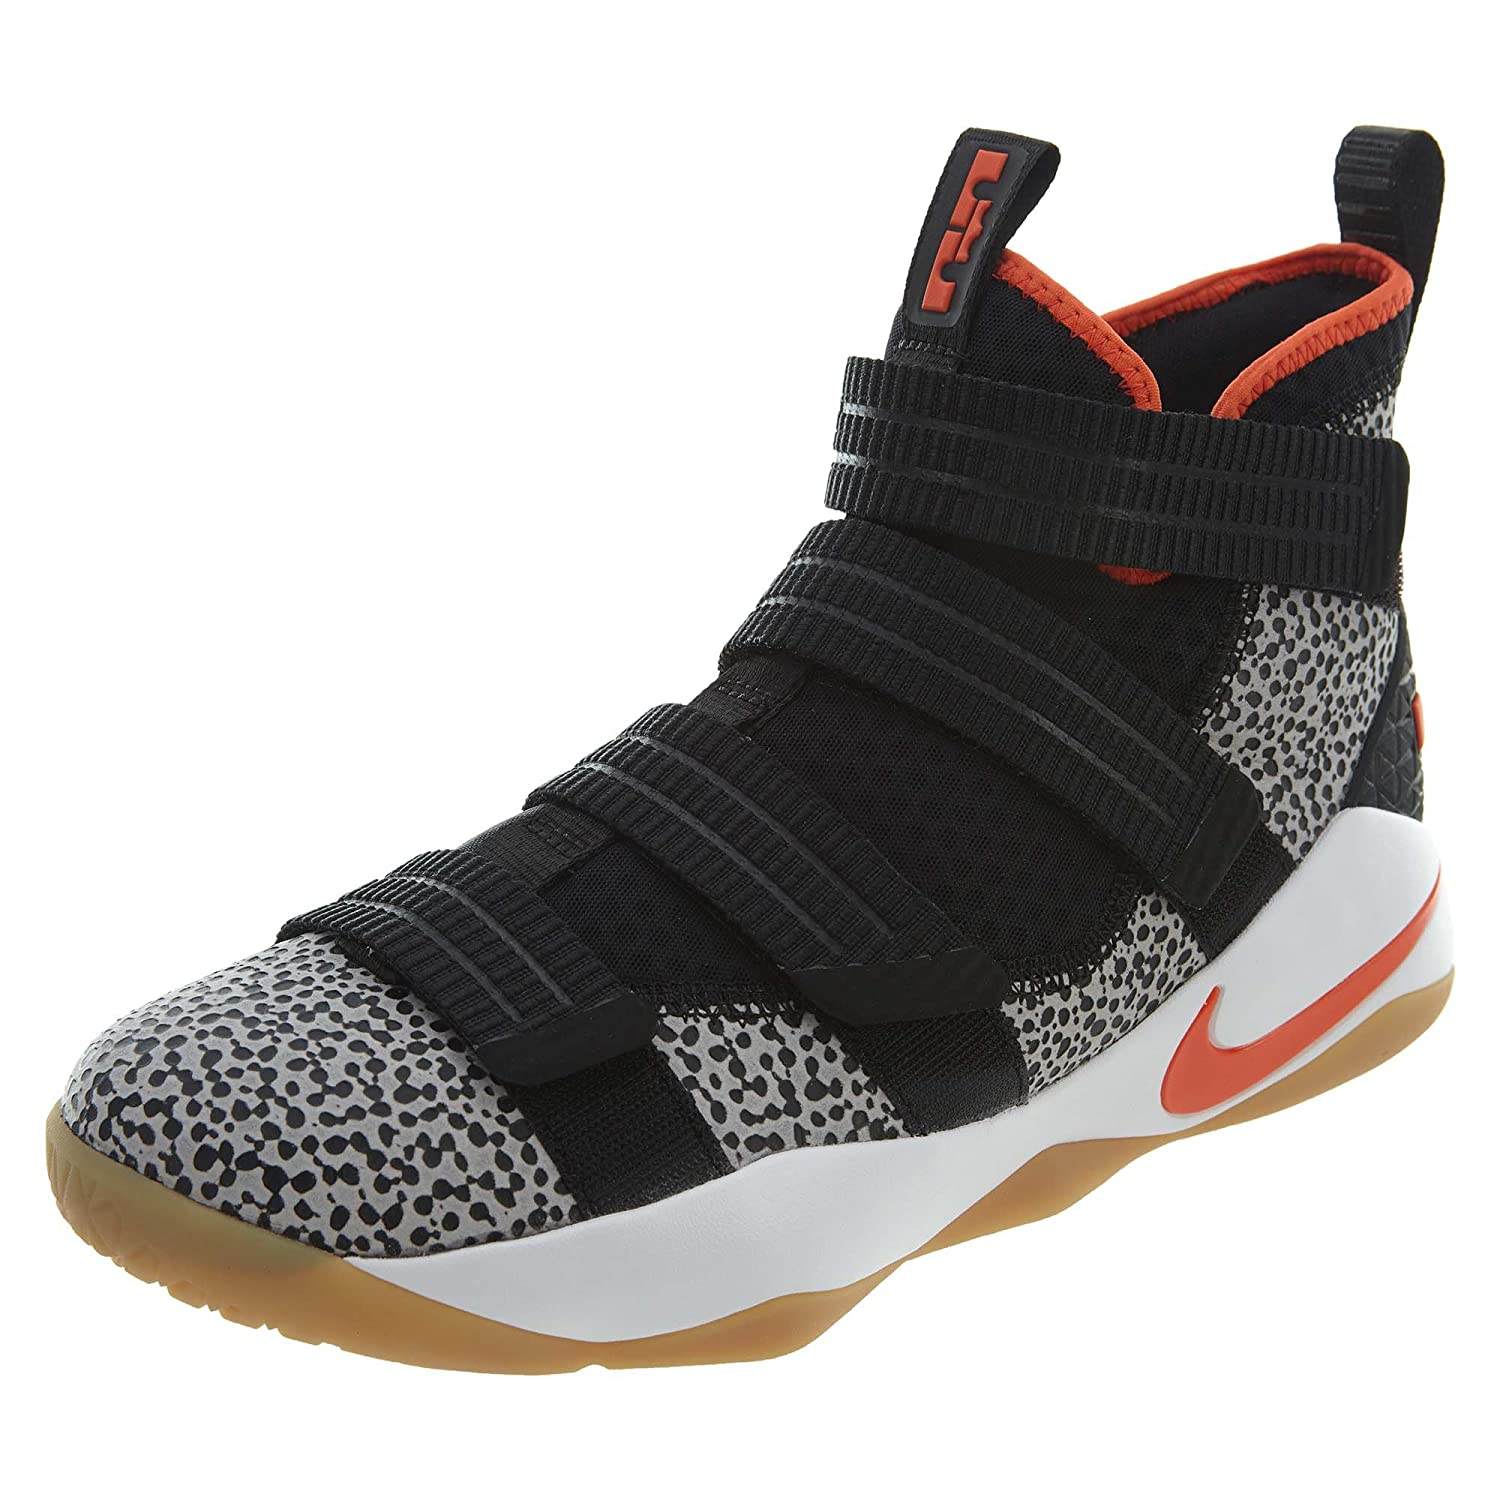 ef350bb0bfd Nike Lebron Soldier Xi SFG (Safari)  Buy Online at Low Prices in India -  Amazon.in